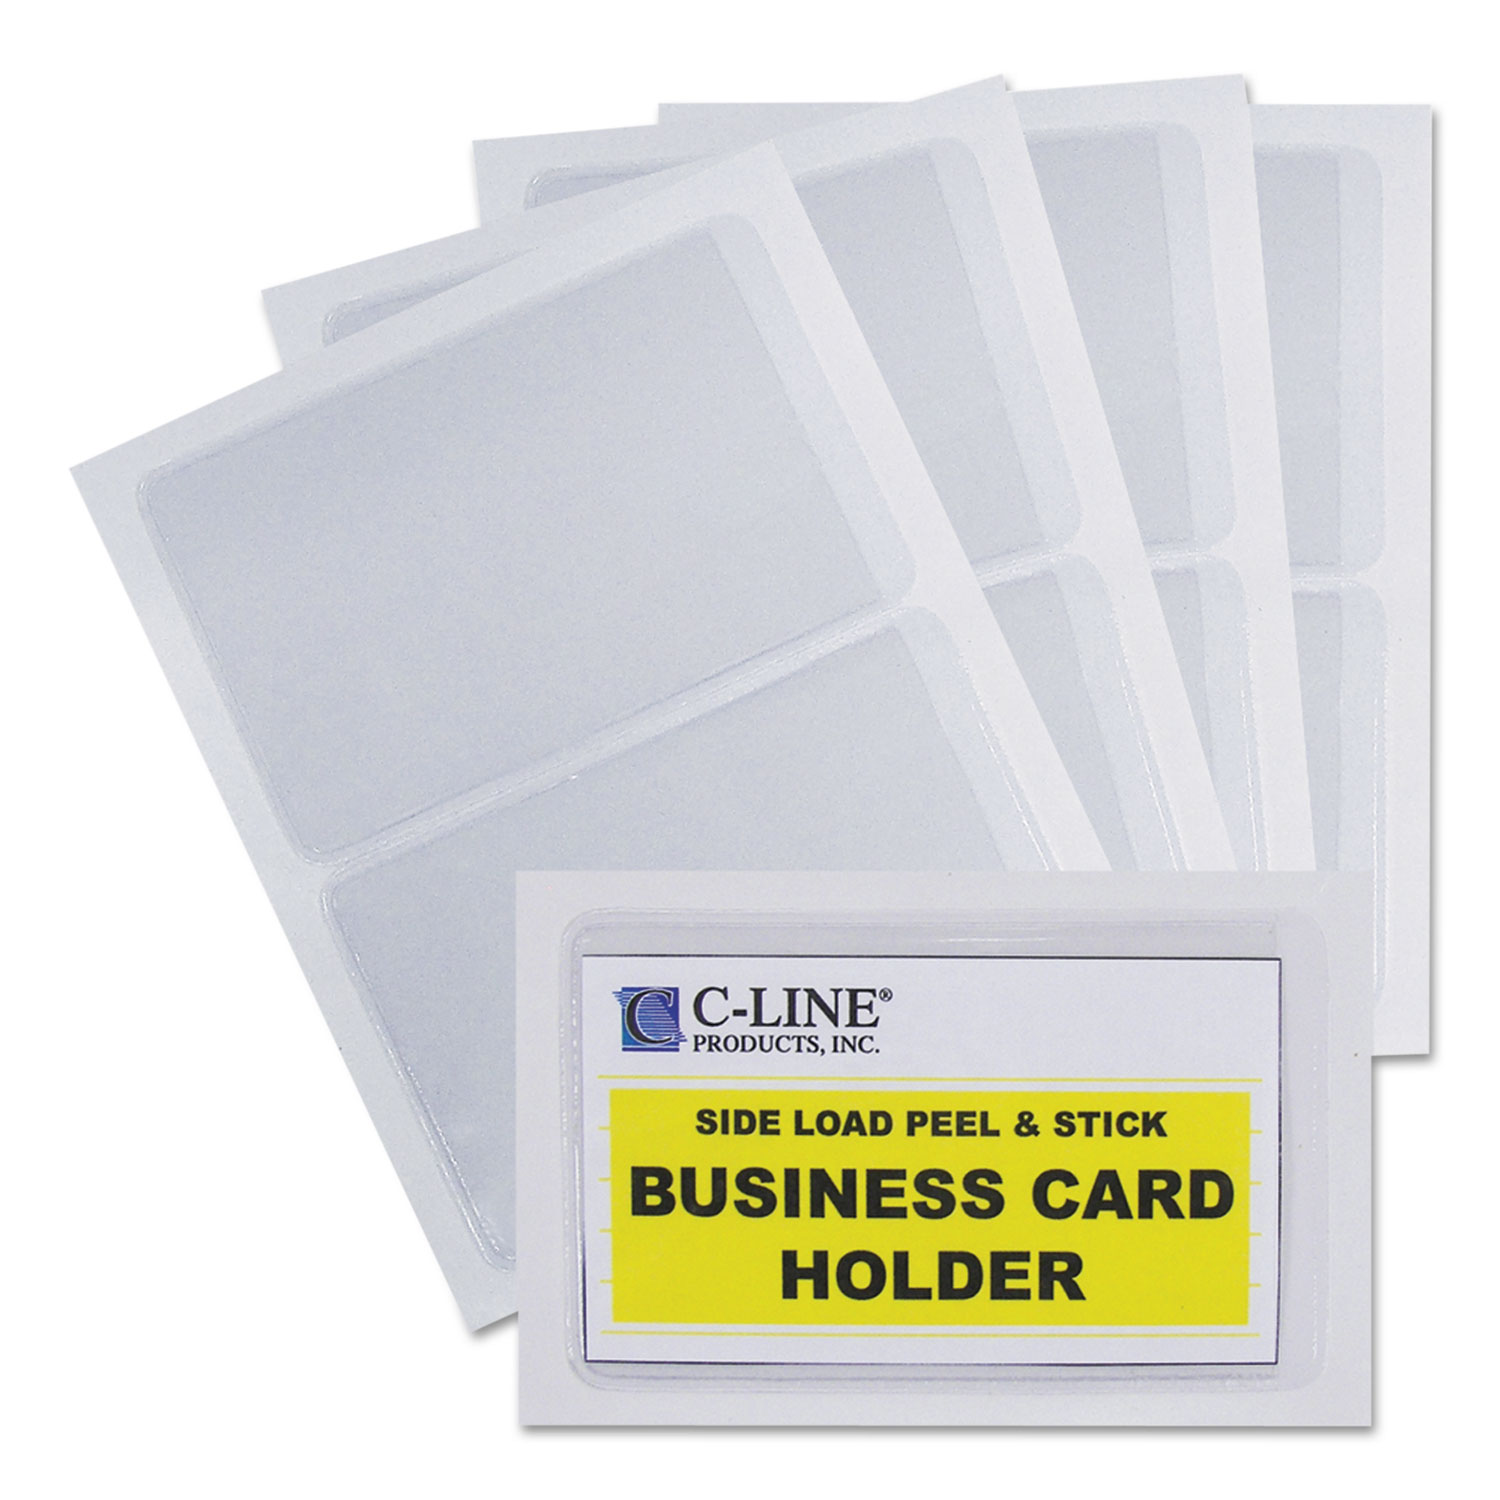 Self adhesive business card holders by c line cli70238 self adhesive business card holders side load 3 12 x 2 clear 10pack magicingreecefo Image collections